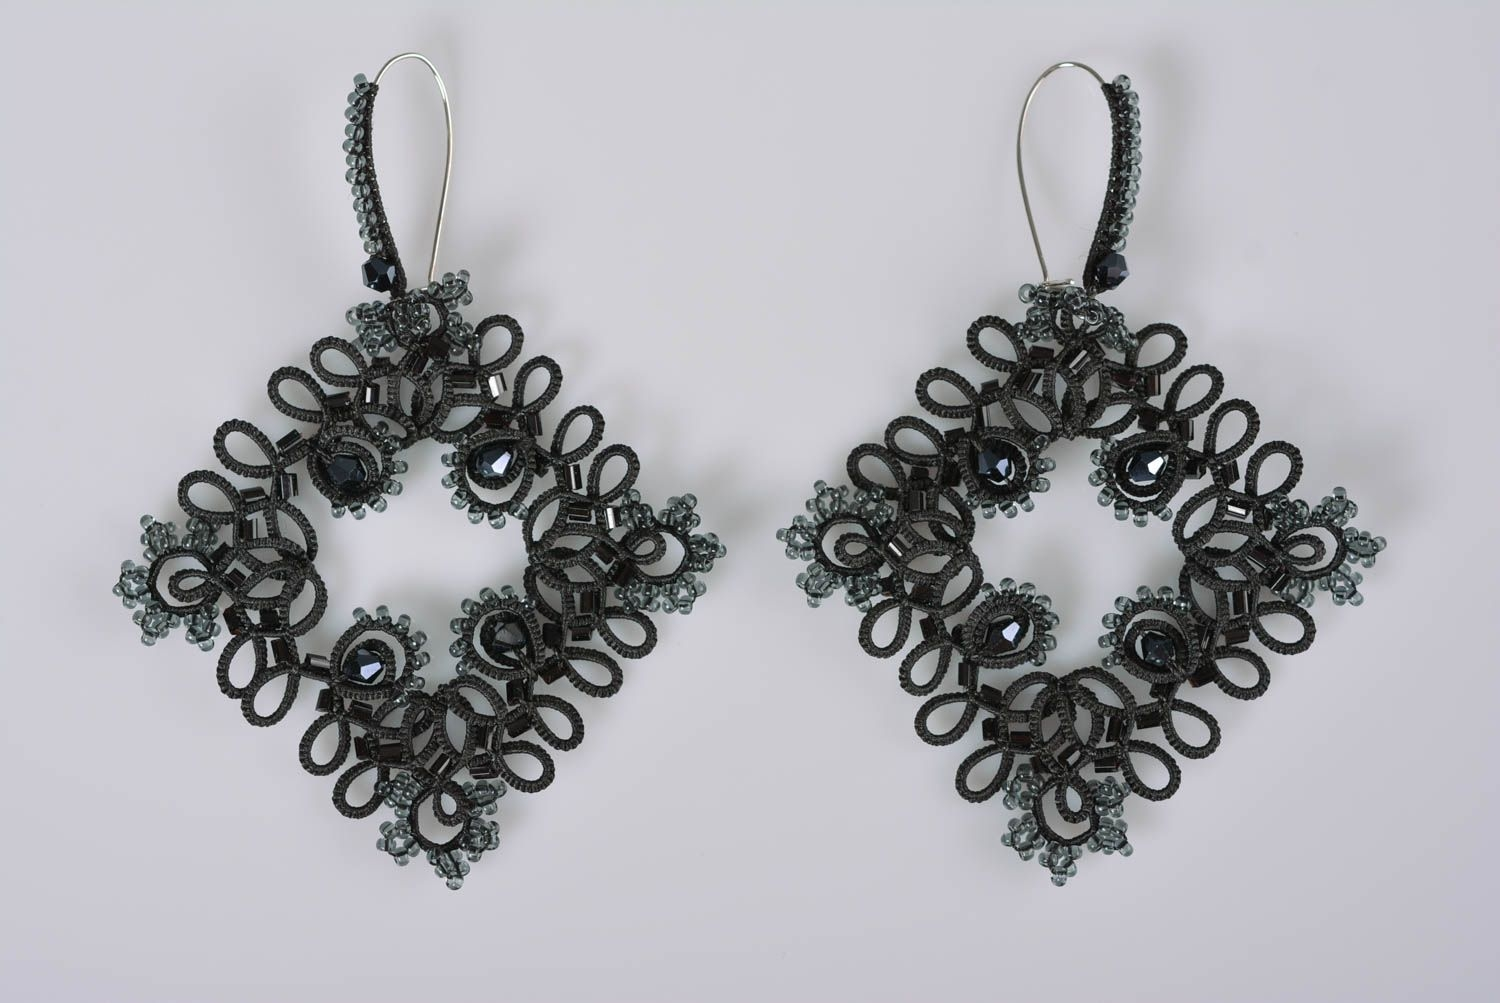 Handmade jewelry stylish earrings unique jewelry designer accessories gift  ideas sold by BrightestBijouterie